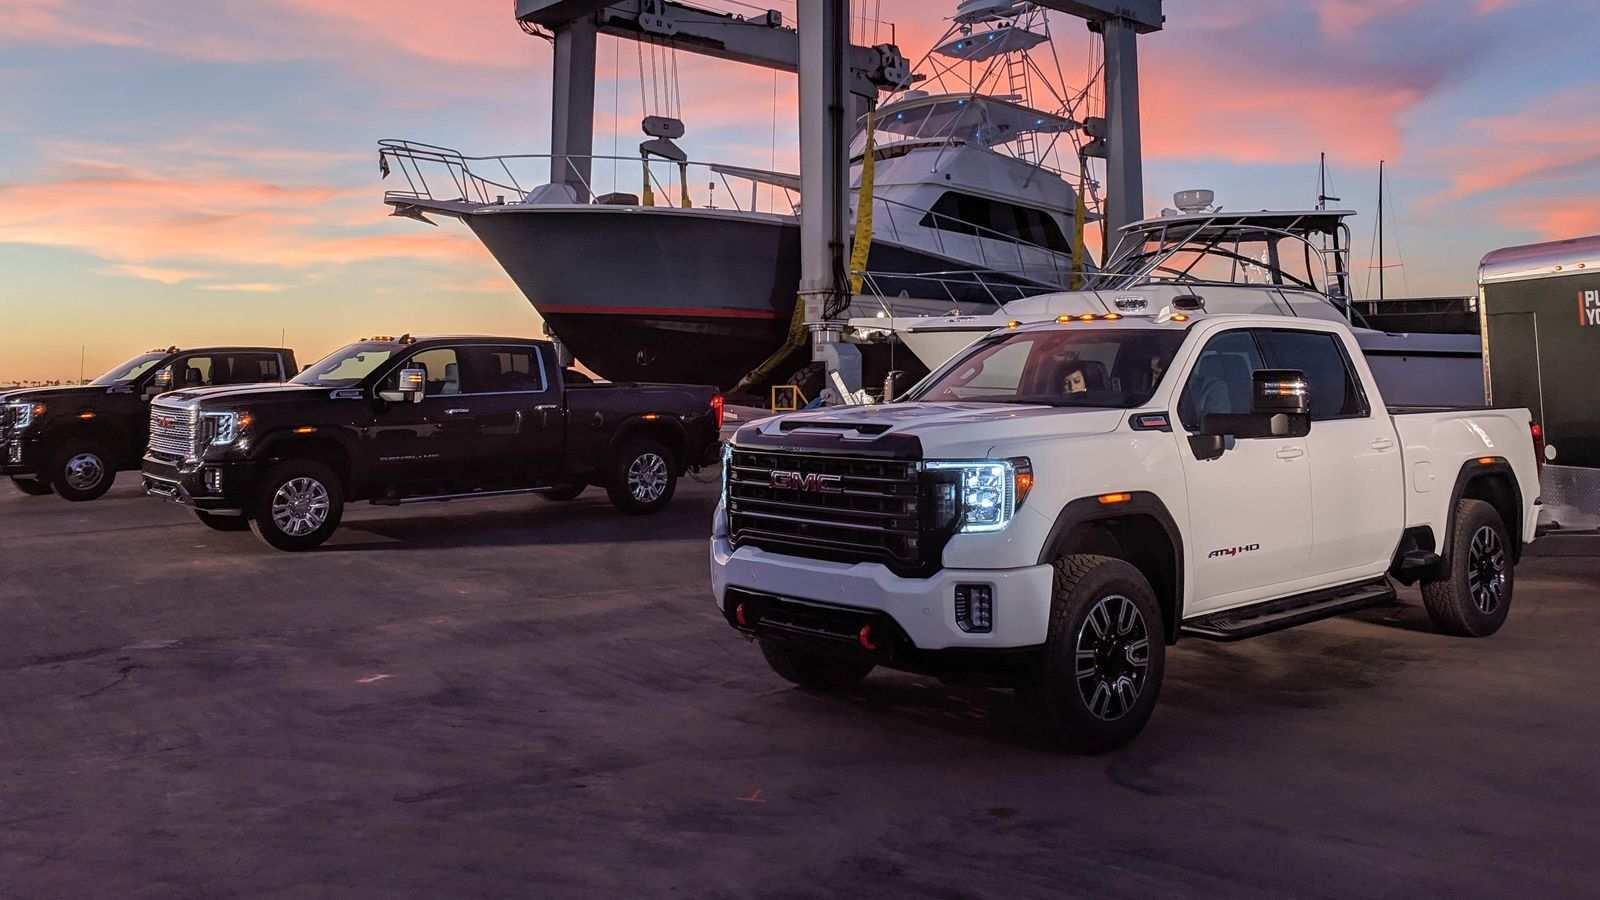 77 All New When Does The 2020 Gmc Sierra Come Out Release